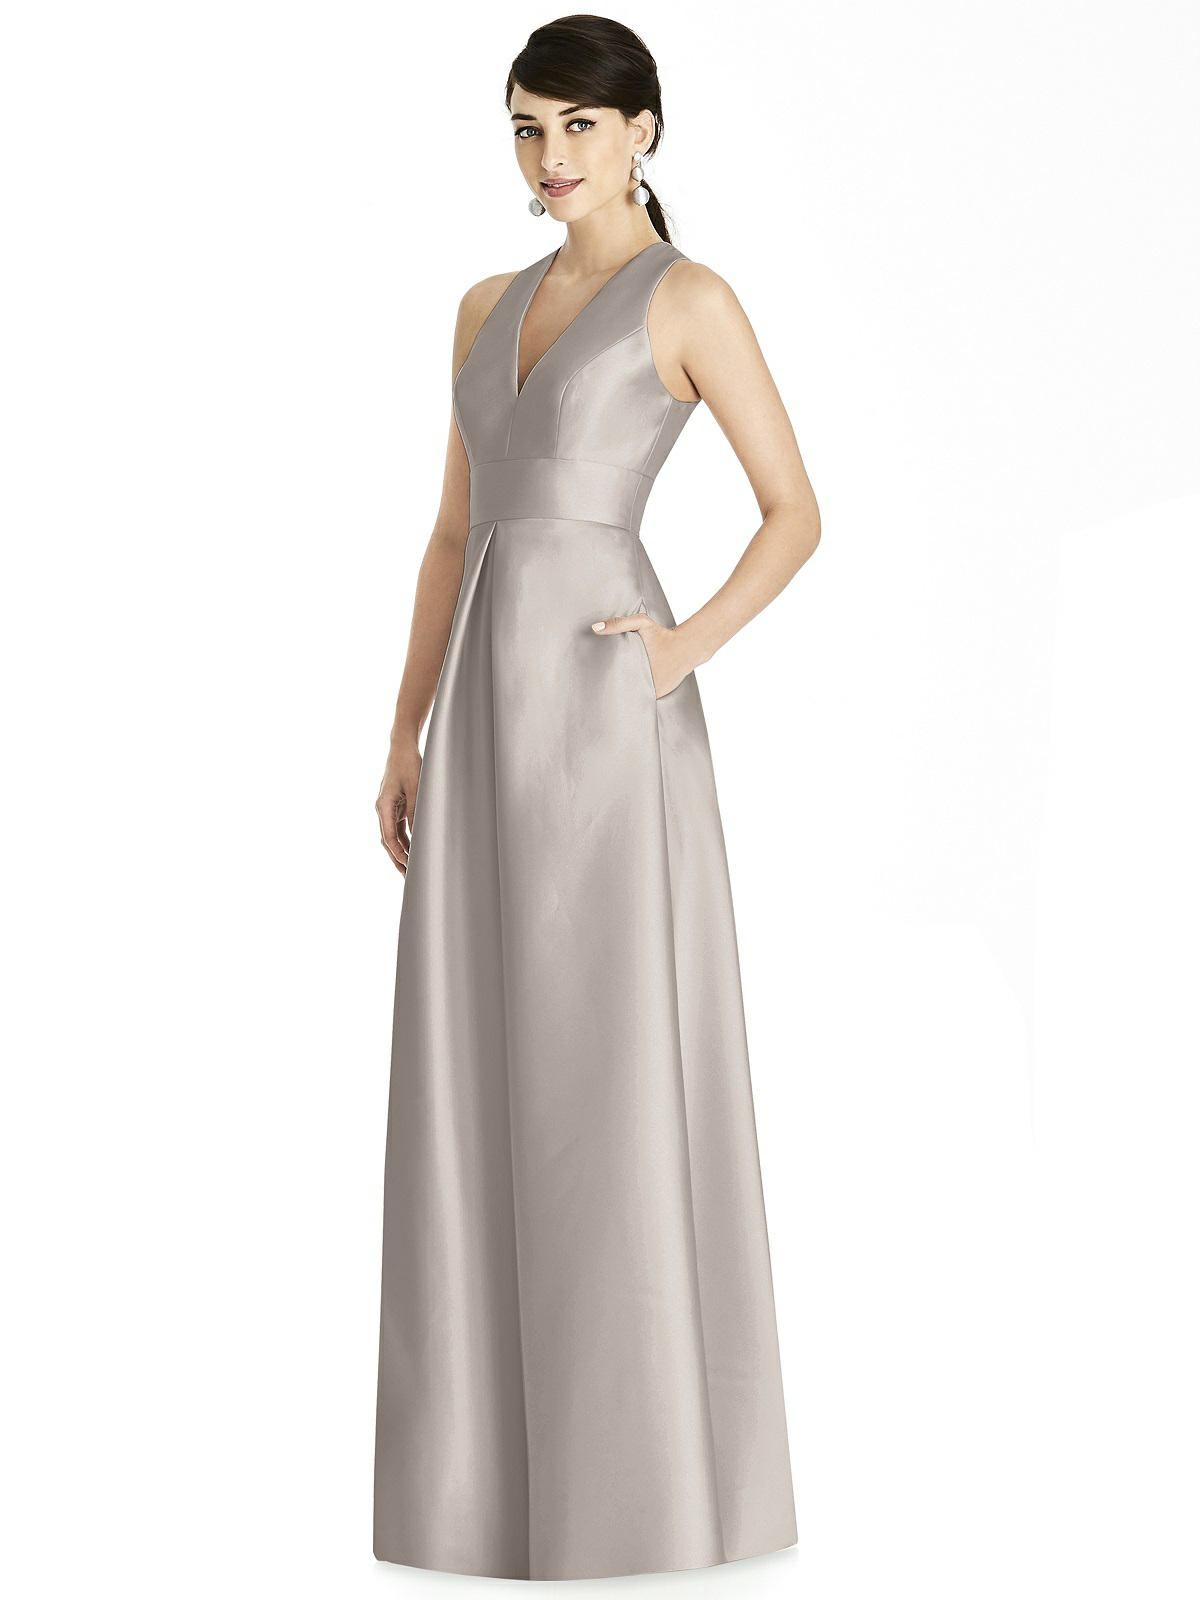 095e8d118d4f ALFRED SUNG. Alfred Sung offers bridesmaid and maternity dresses.